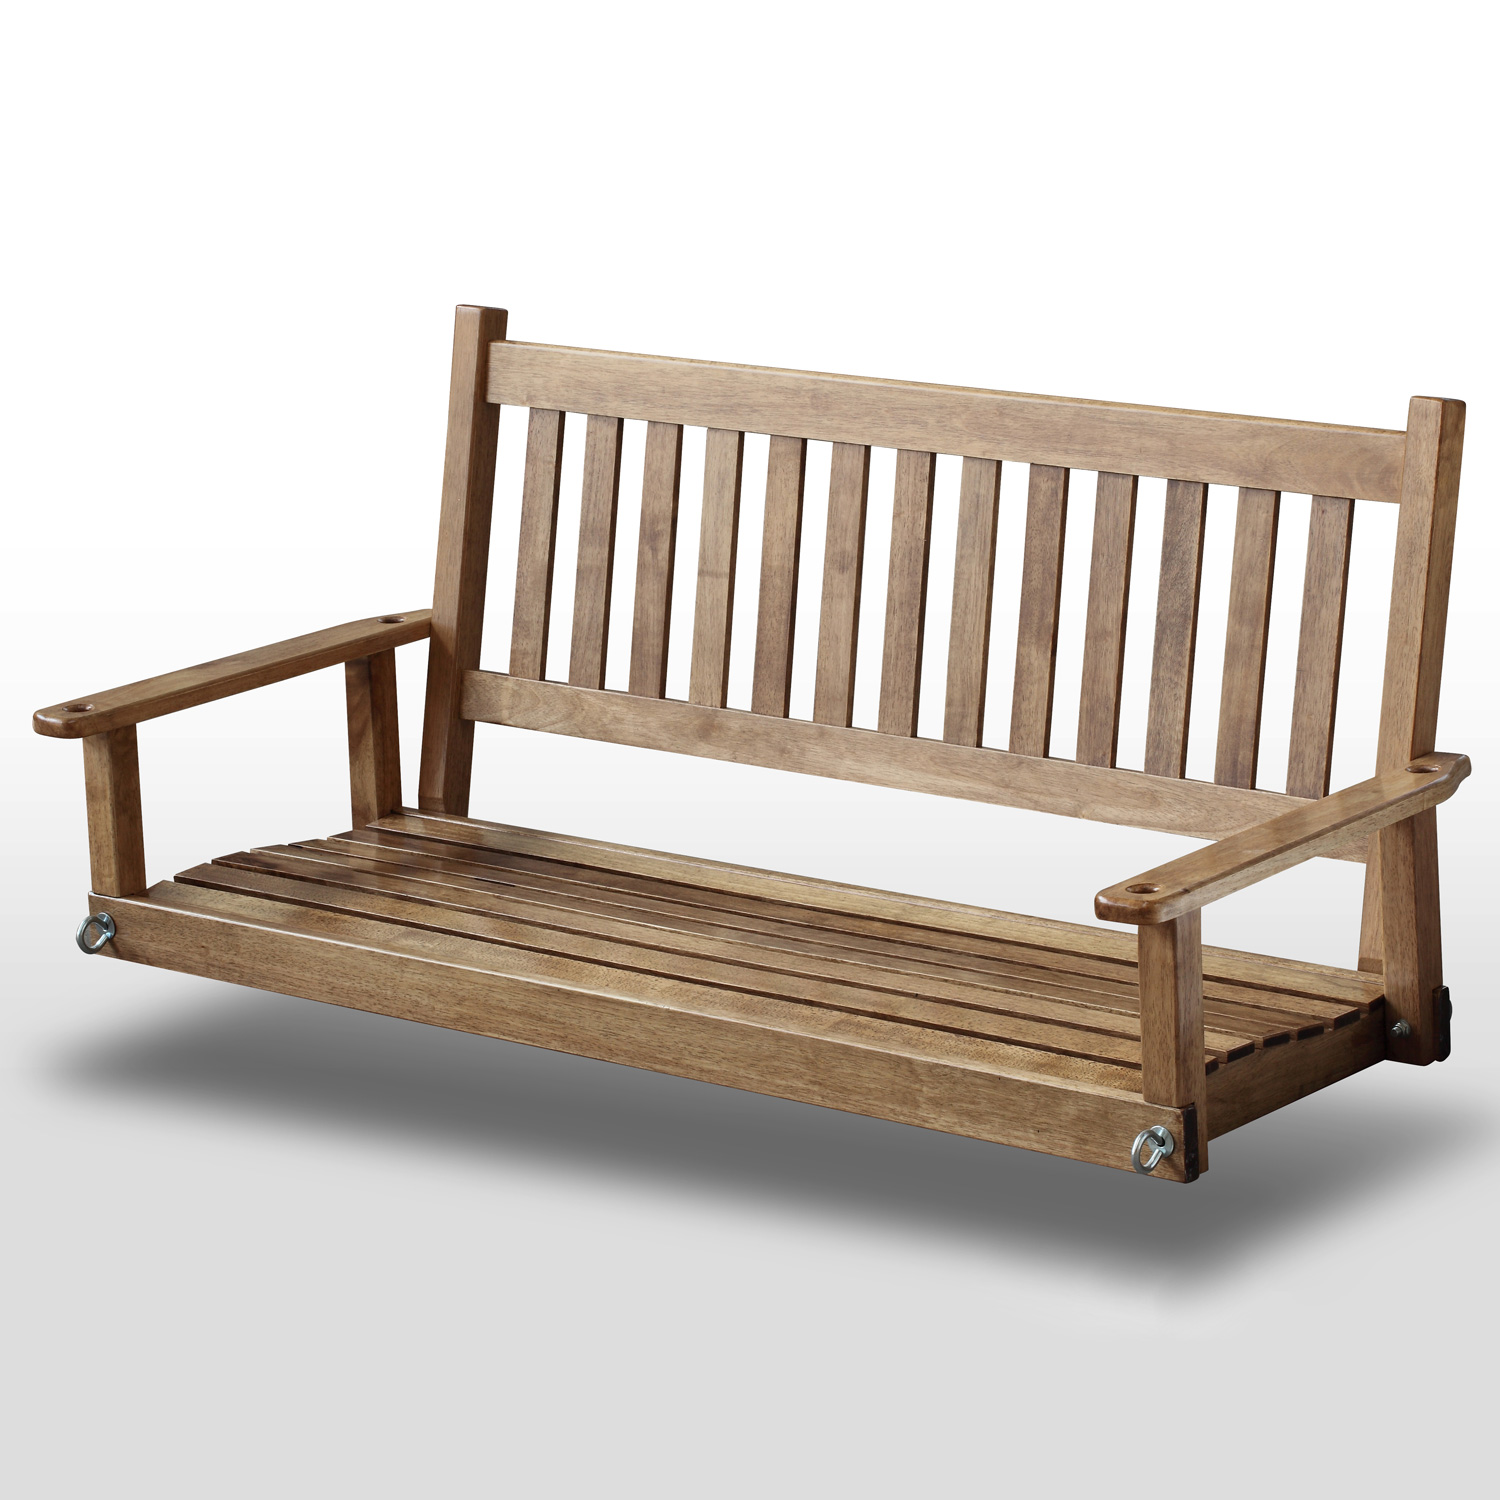 Plantation 58.5'' Wood Porch Swing - Maple Stain - HINK-855PSM-RTA